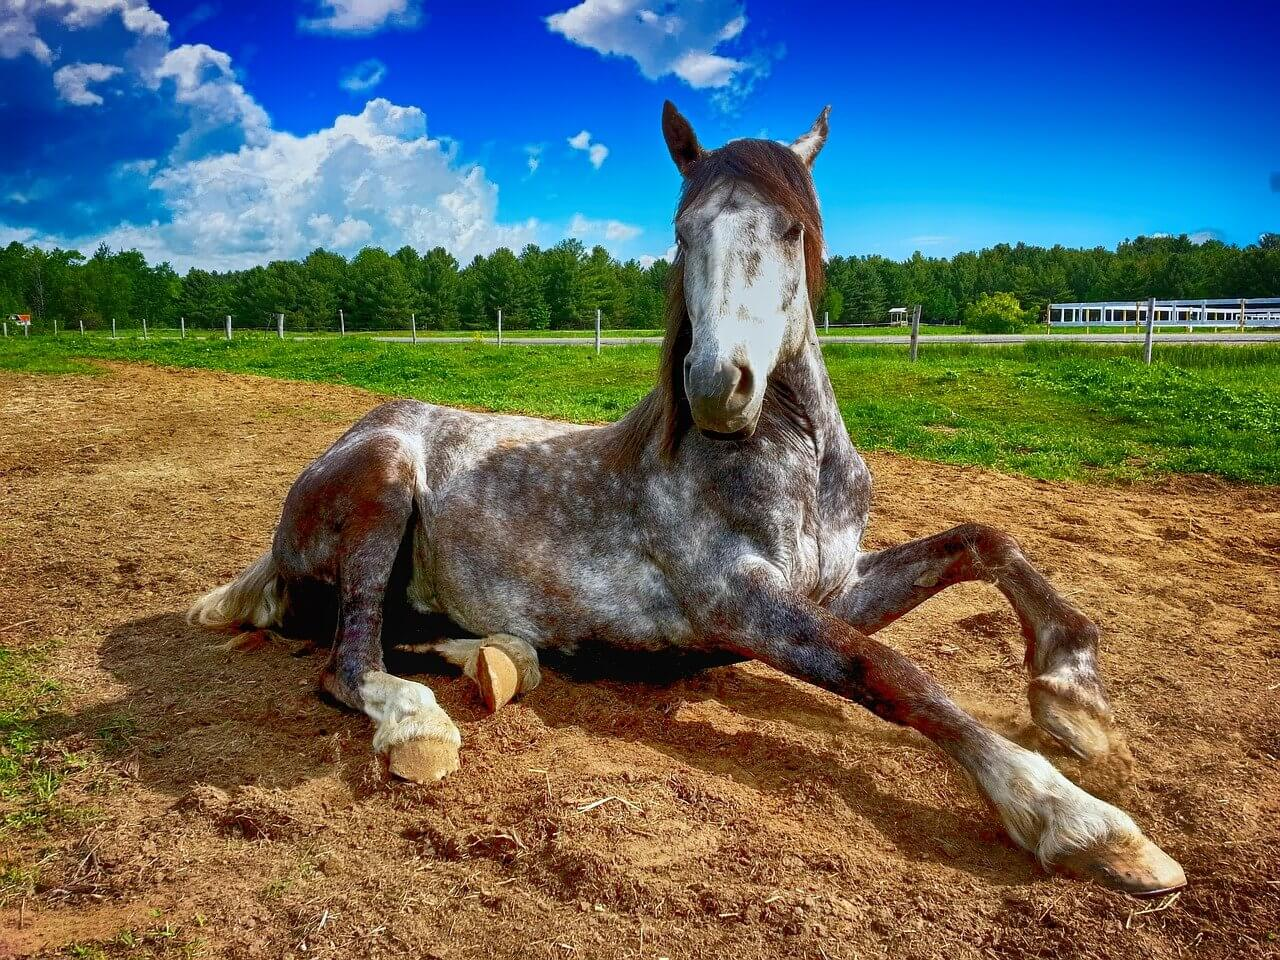 Is It Normal For A Horse To Lie Down